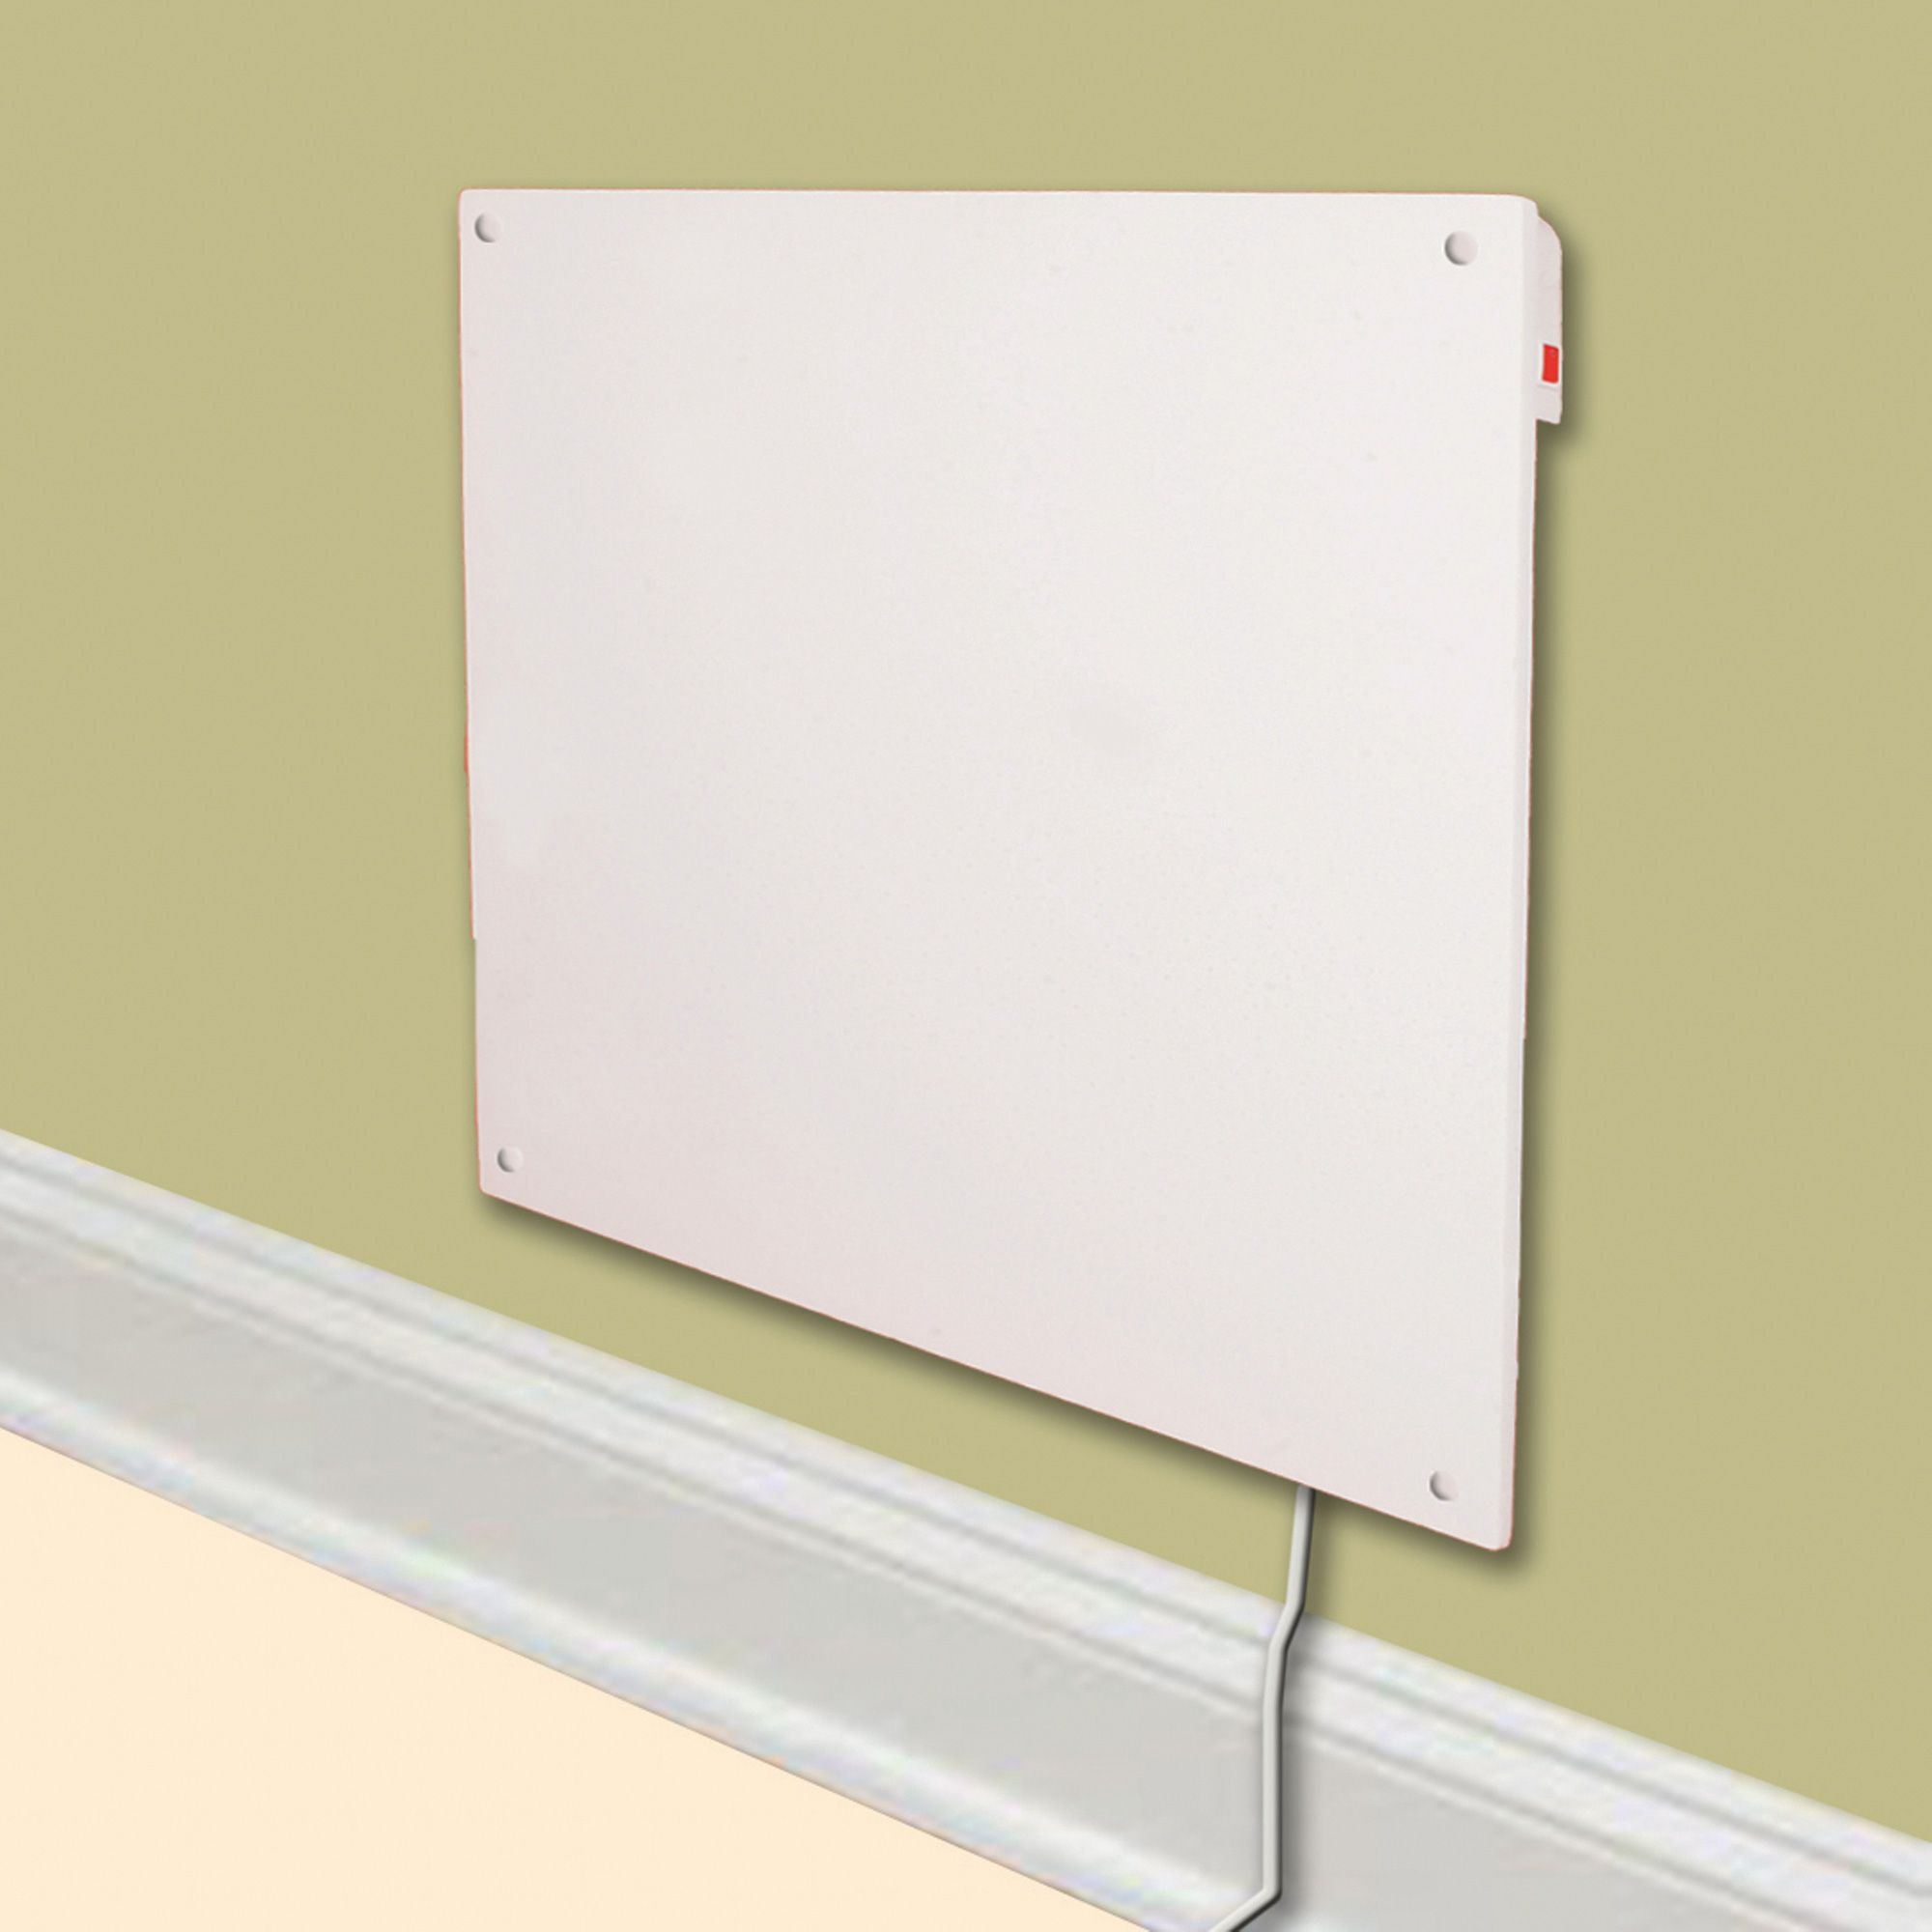 Electric wall heaters for homes cozy heater electric - Wall mounted electric bathroom heaters ...